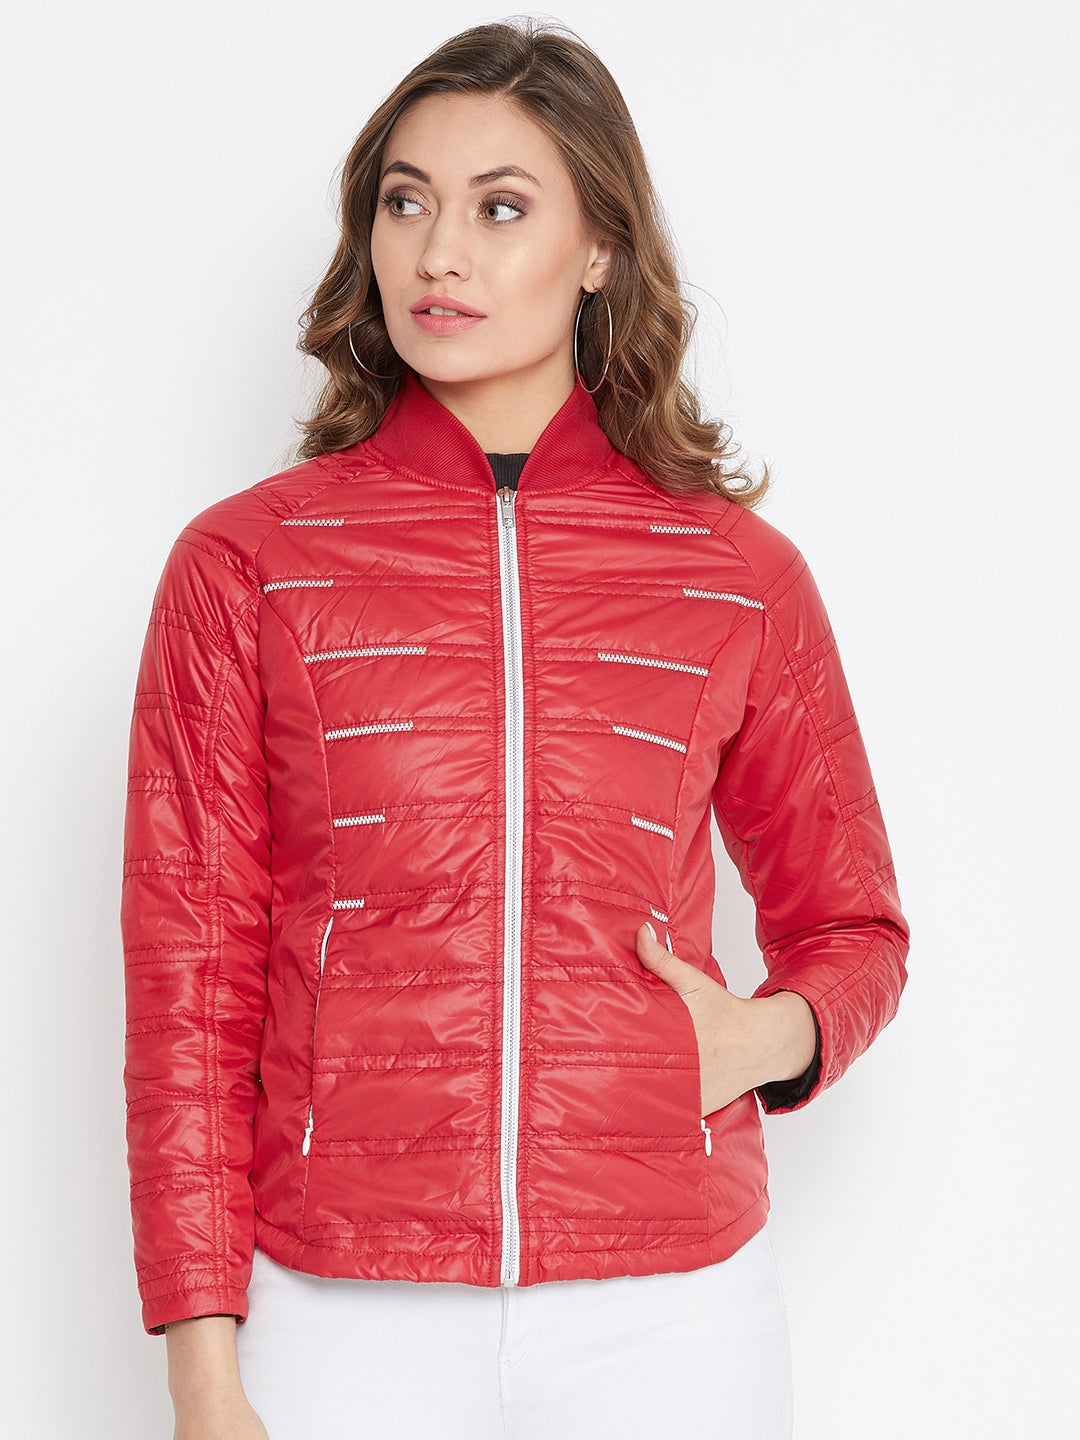 JUMP USA Women Red Solid Padded Jacket - JUMP USA